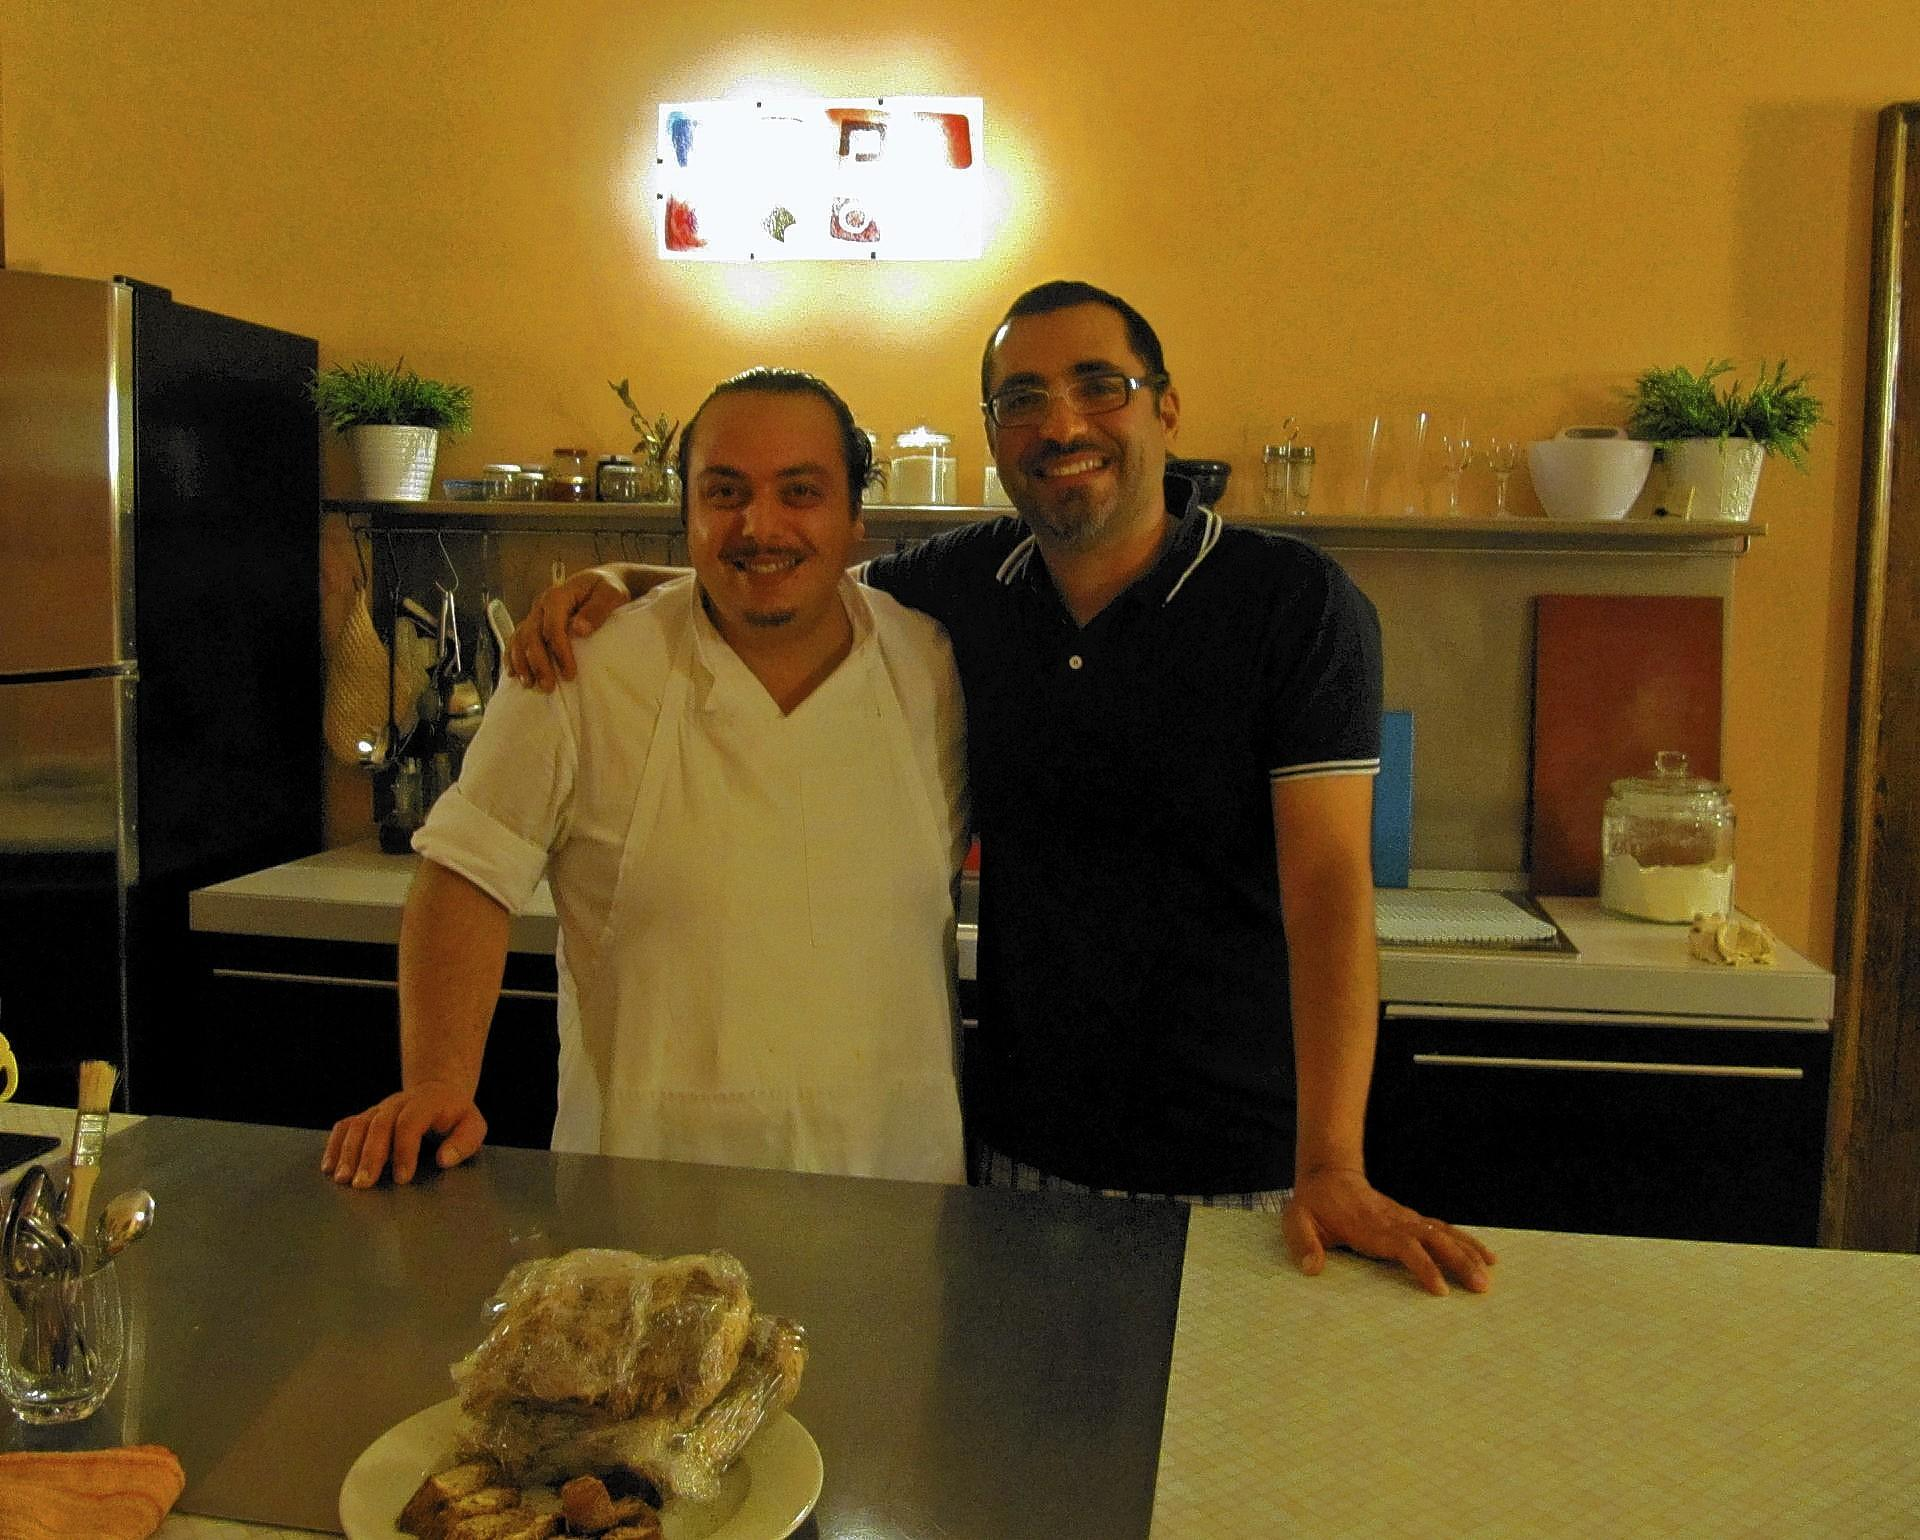 Chef Dino Paganelli (left) and Massimo Criscio, a sommelier and owner of a palazzo and cooking school in Italy, will prepare dinners at Molinari's Restaurant in Bethlehem on Jan. 27 and 28.